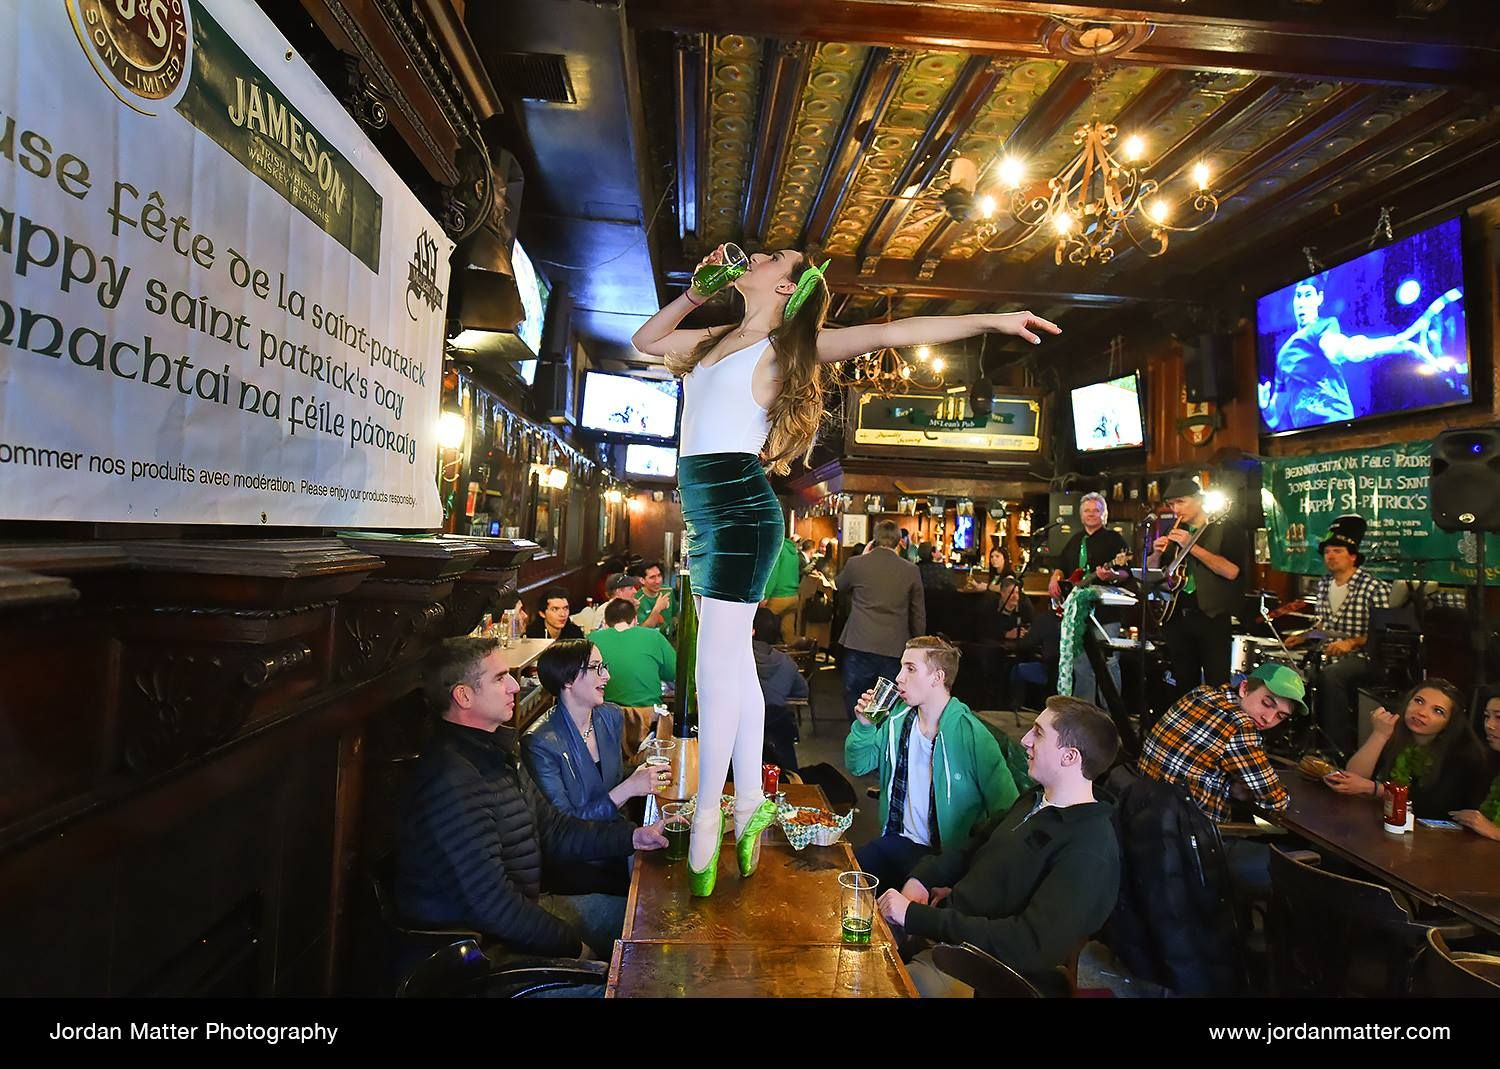 Dancer Among Us Eden Schwartz Celebrating St Patrick S Day At Mclean S Pub In Montreal Dancers Among Us Dance Pictures Dance Poses